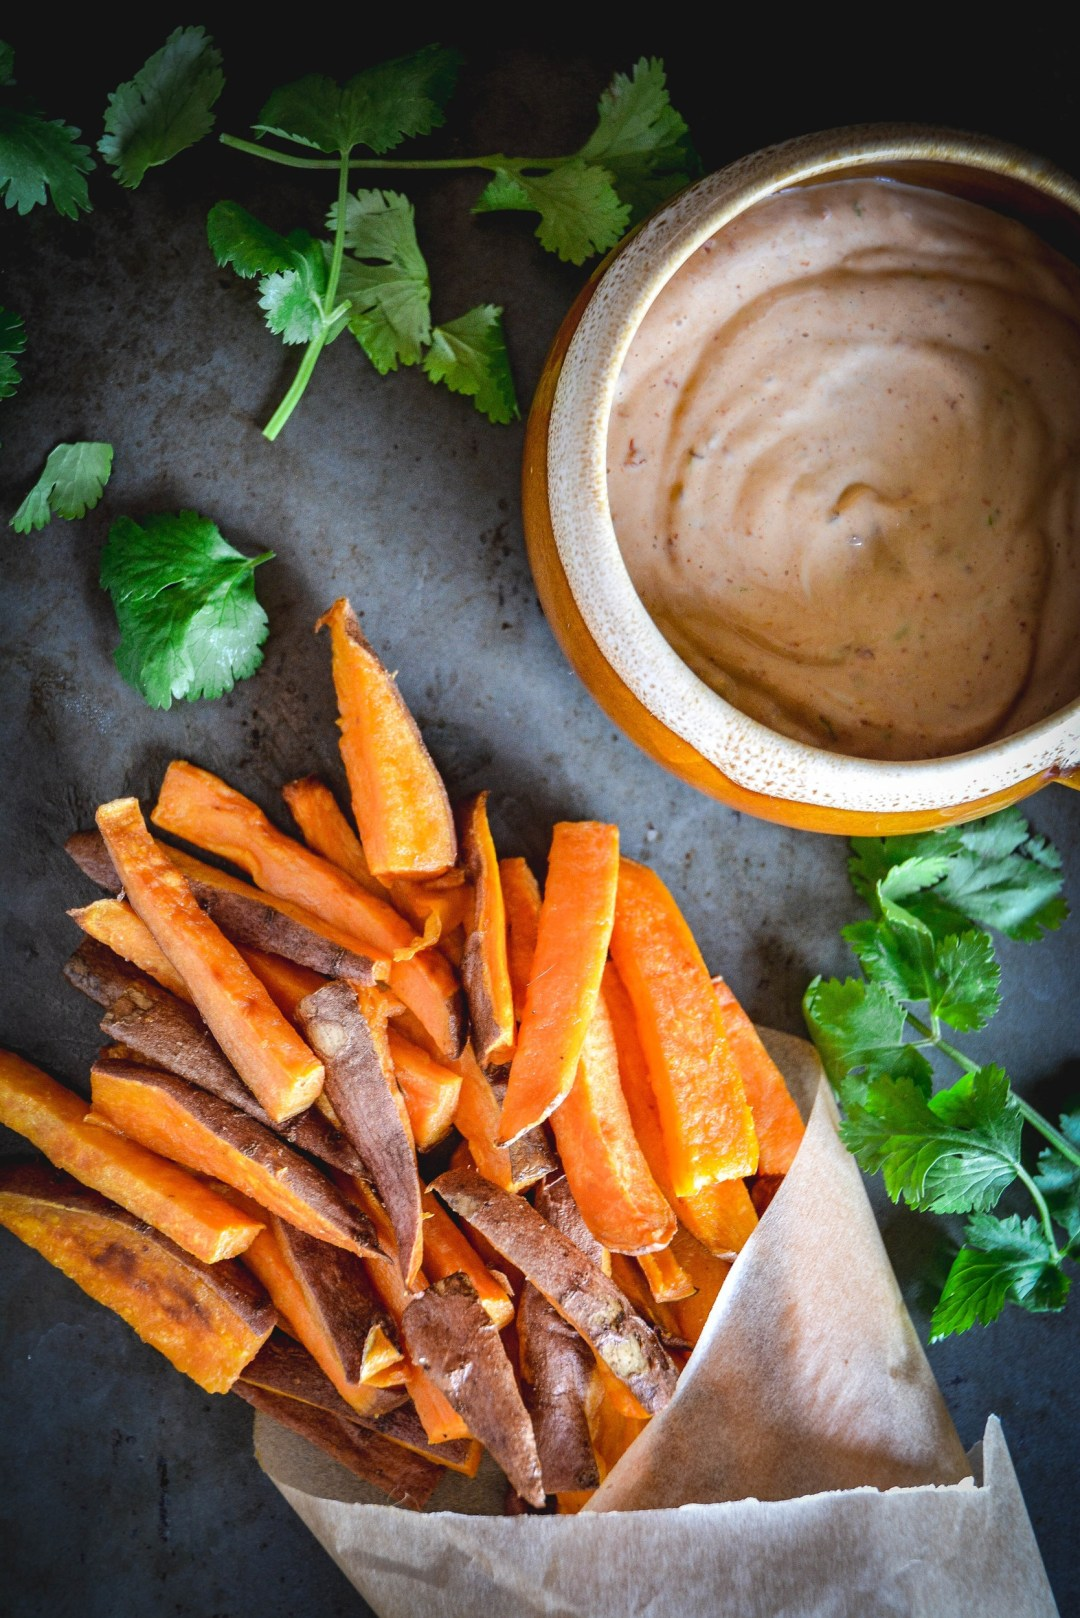 sweet potato fries, mayo and herbs